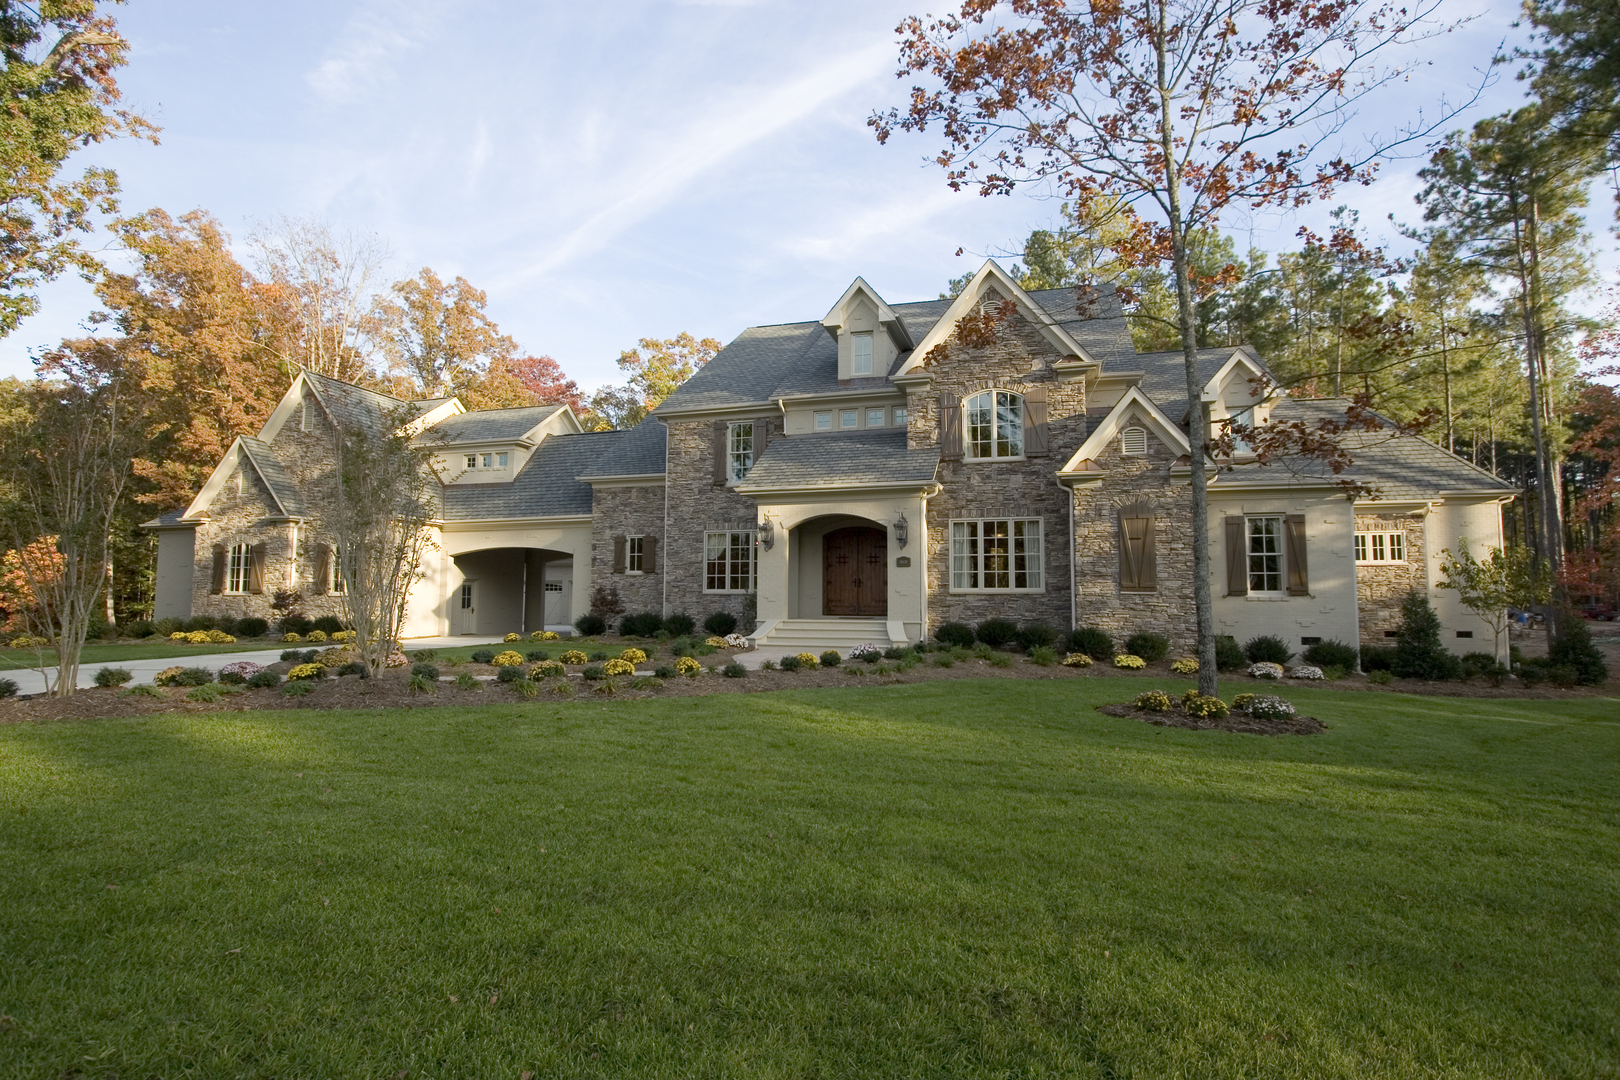 5400 Sq Ft Luxury Country Manor House Plan 1341351 4